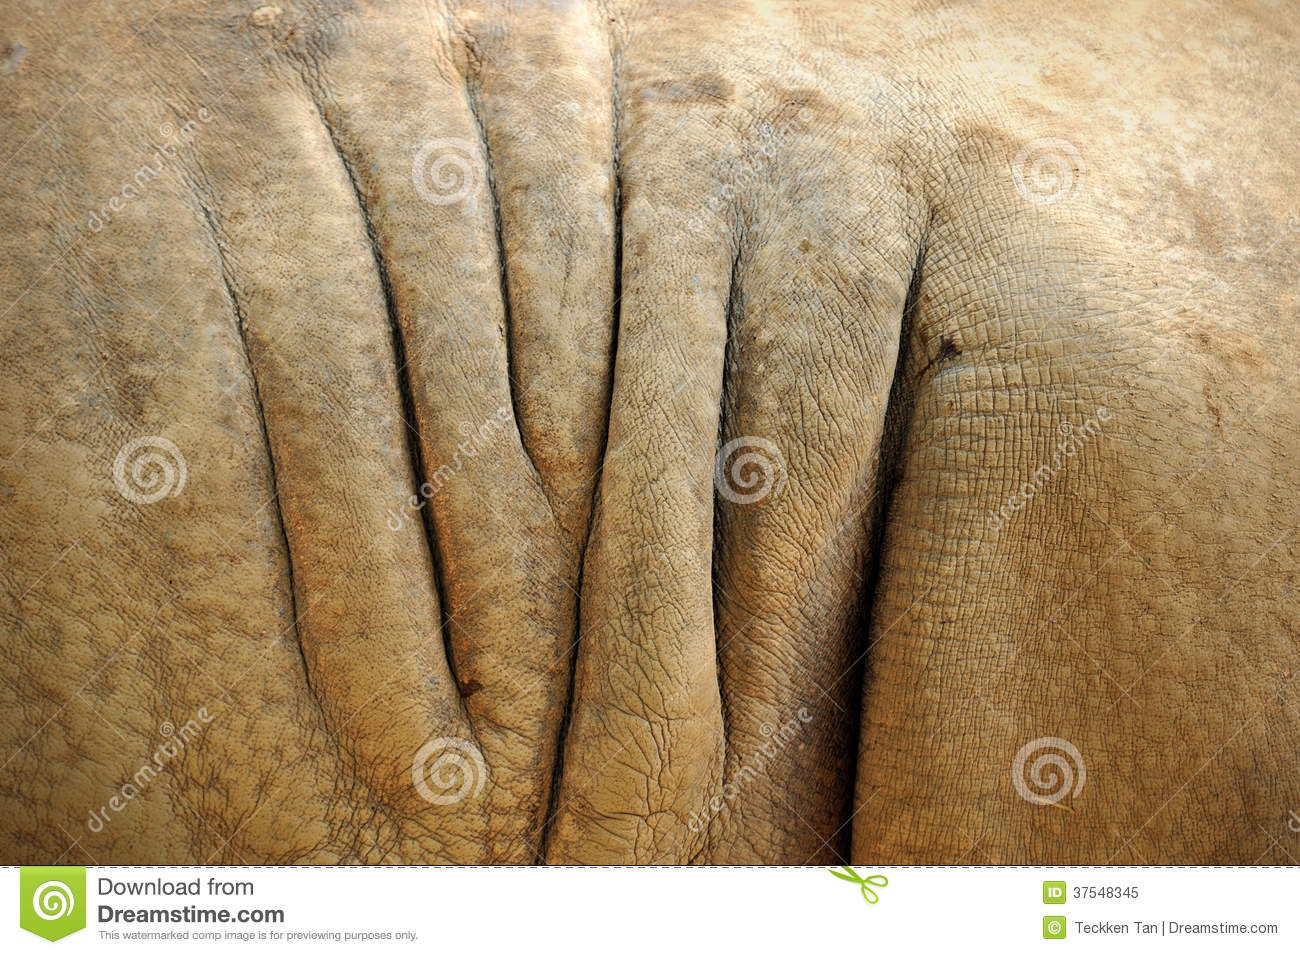 Rhino Skin Texture Royalty Free Stock Photo - Image: 37548345